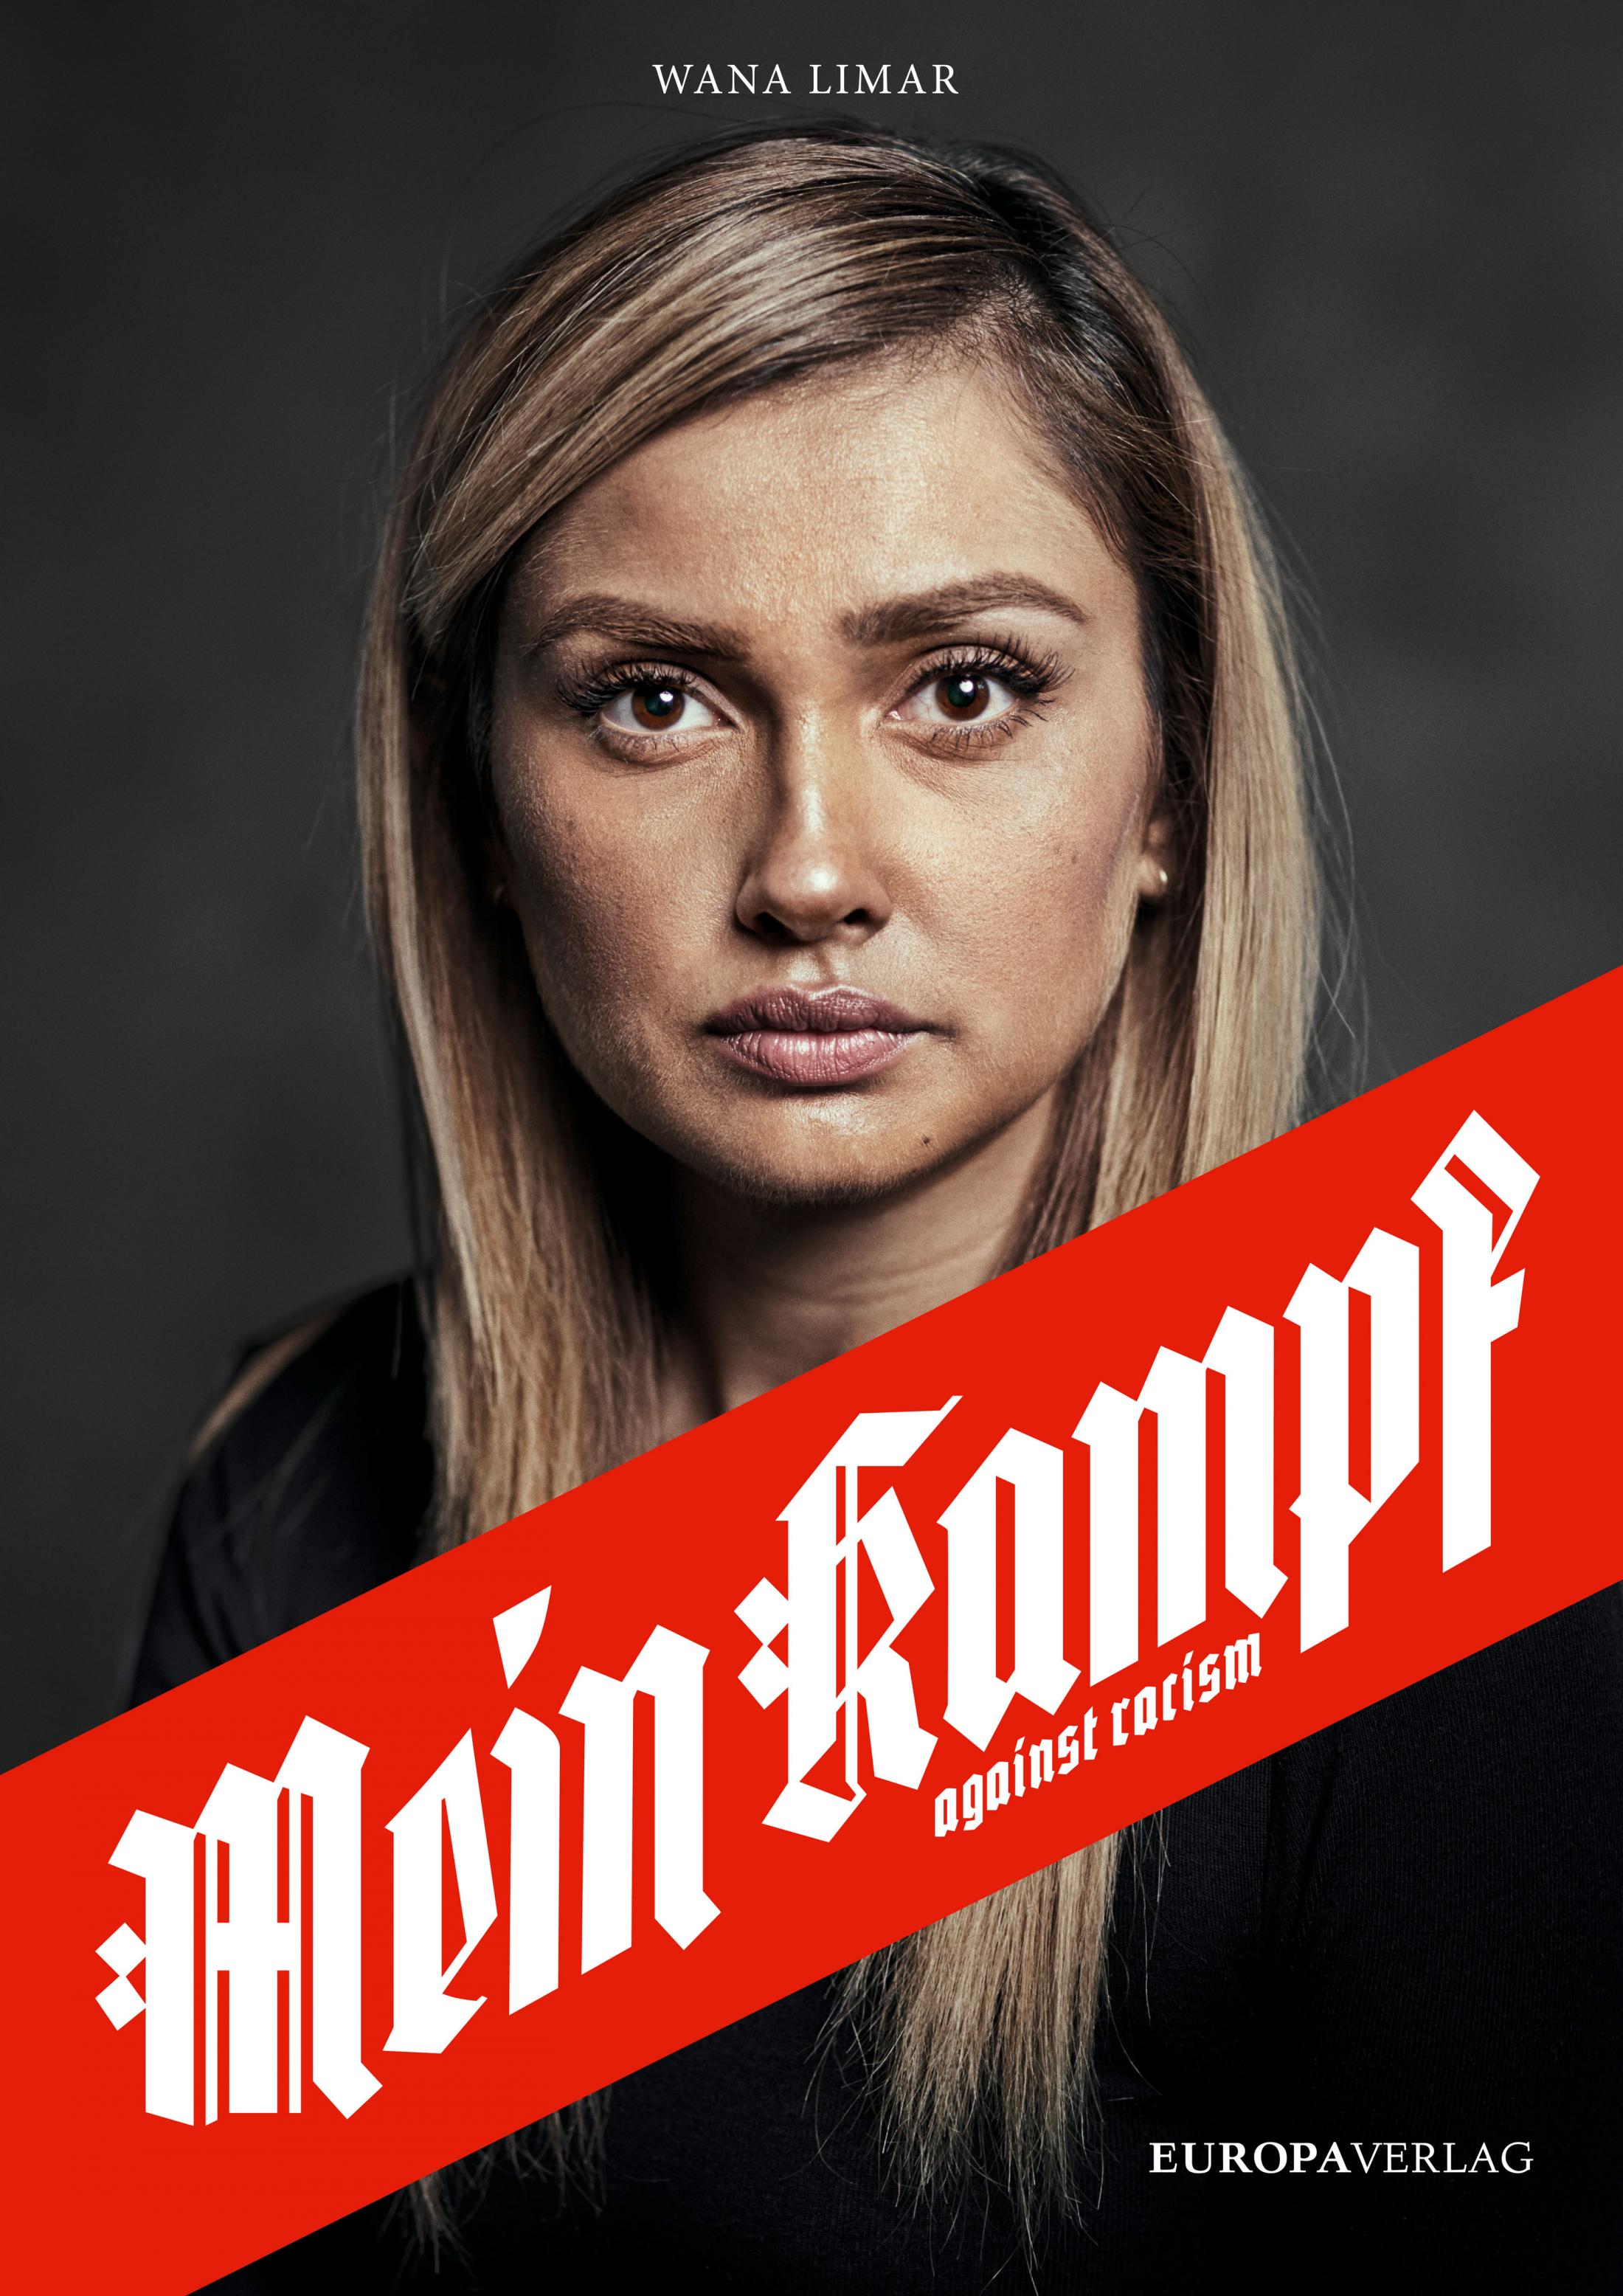 Thumbnail for Mein Kampf – against racism/ Print Ad:  Wana Limar